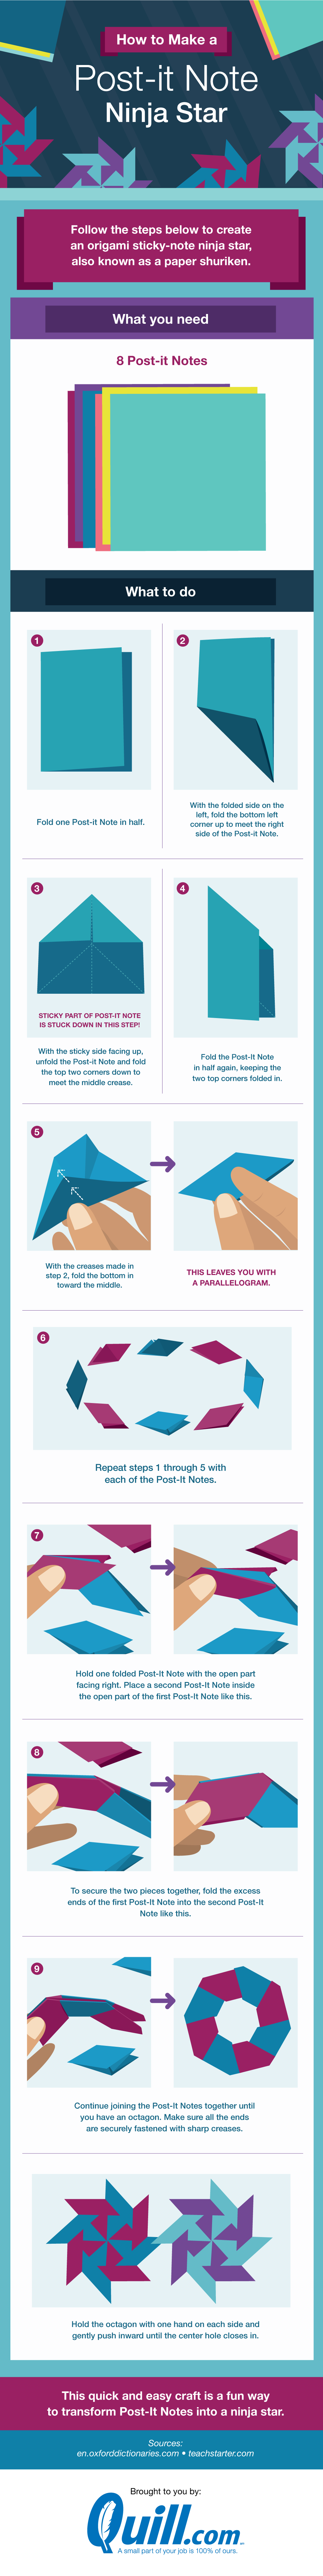 How to make a post-it note ninja star #infographic